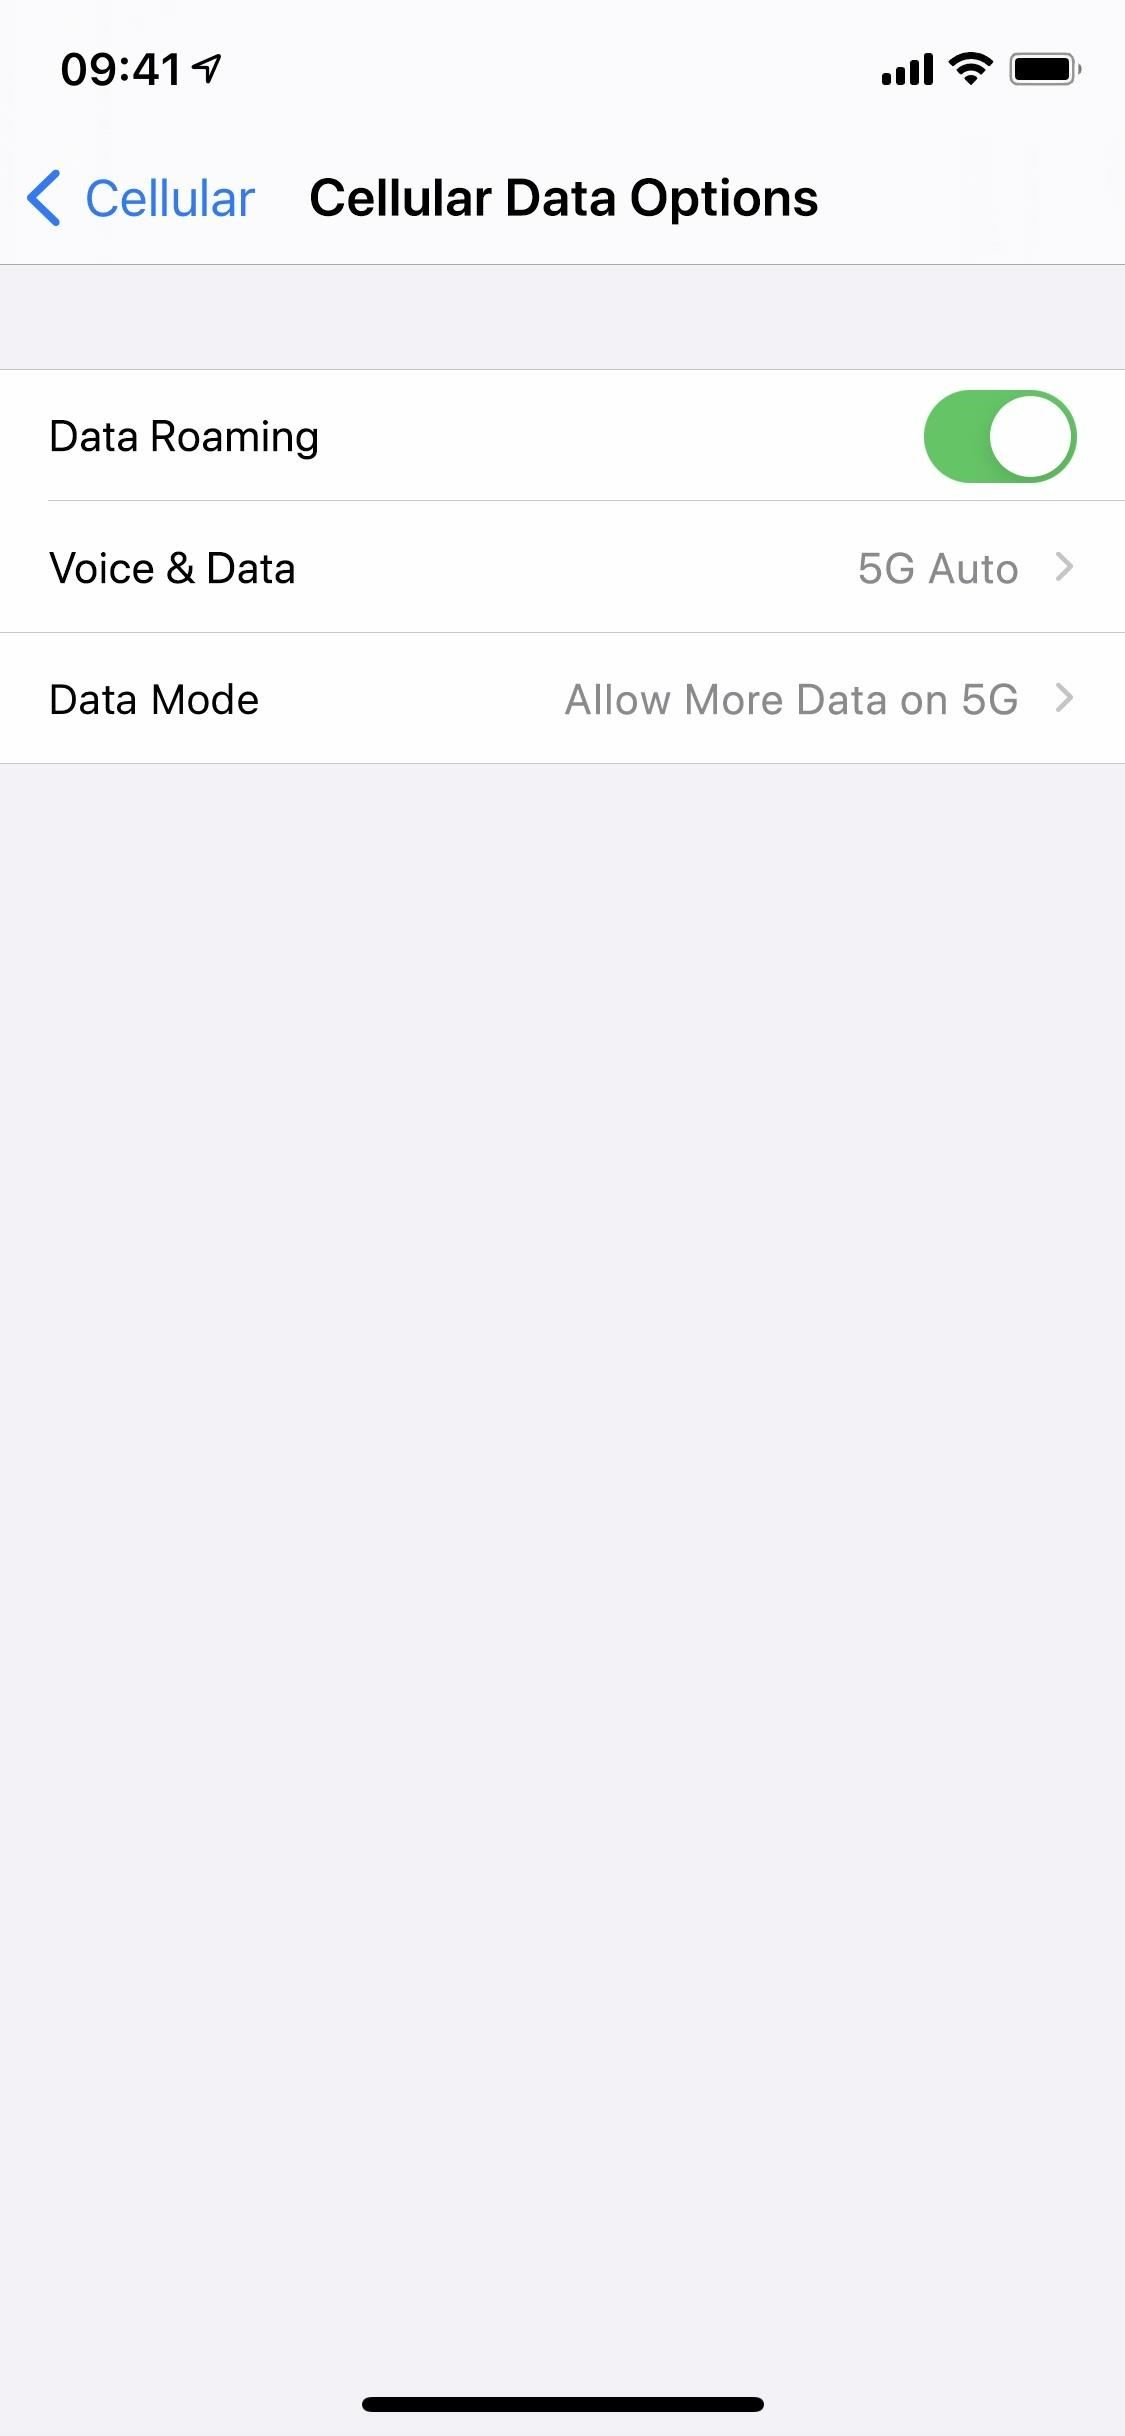 How to Force Your iPhone 12 or 12 Pro to Use 5G All the Time When 5G Networks Are Available